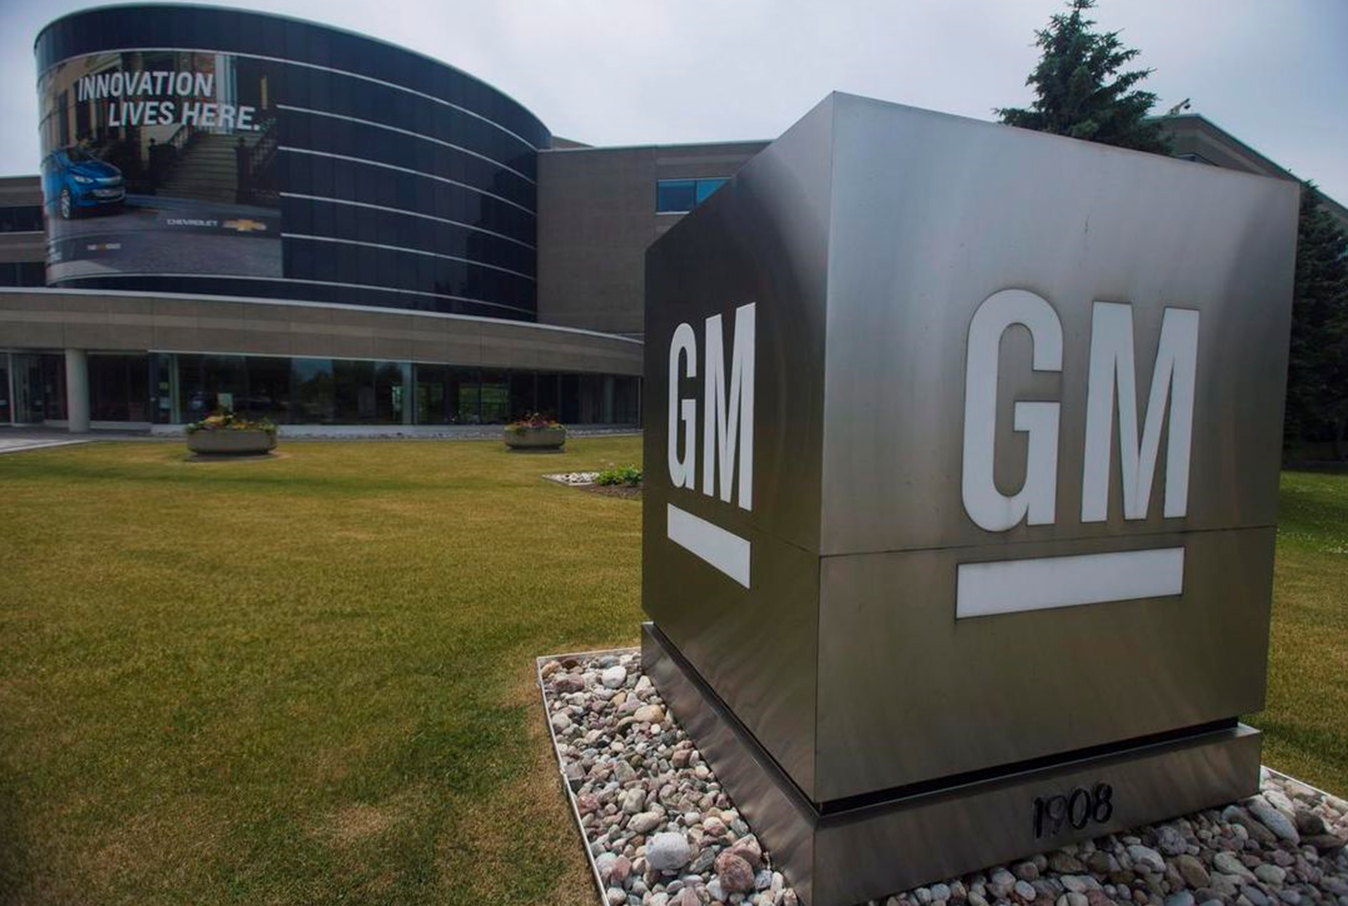 Bedford, Other Hoosier Plants to See no Major Impact From GM Move to Shutdown 5 North American Facilities